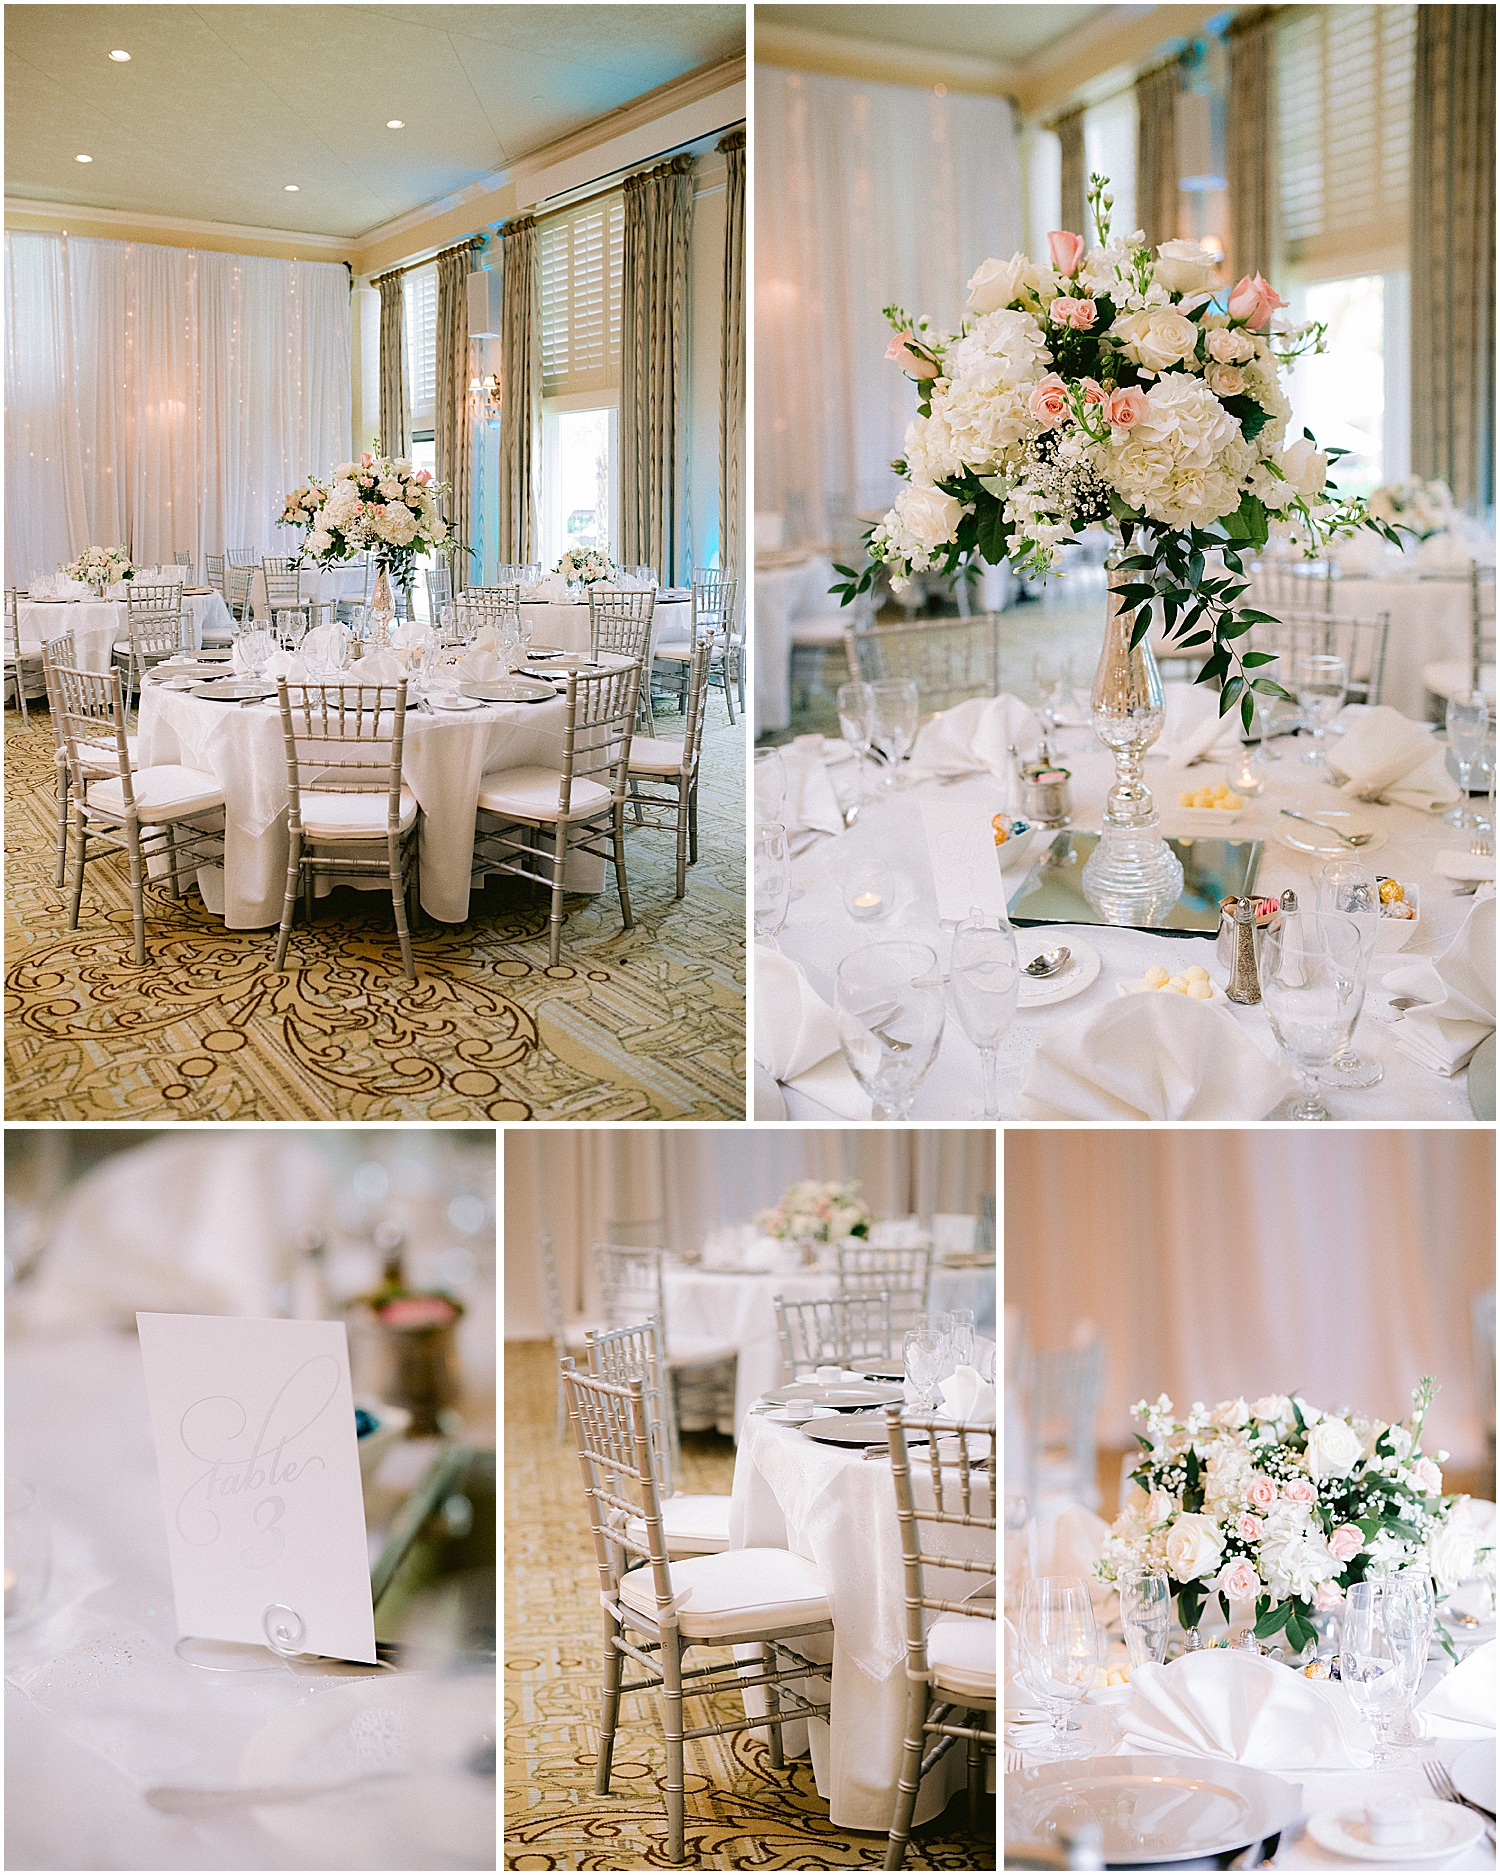 Centerpieces by Harbour Bay Florist at Willoughby Golf Club